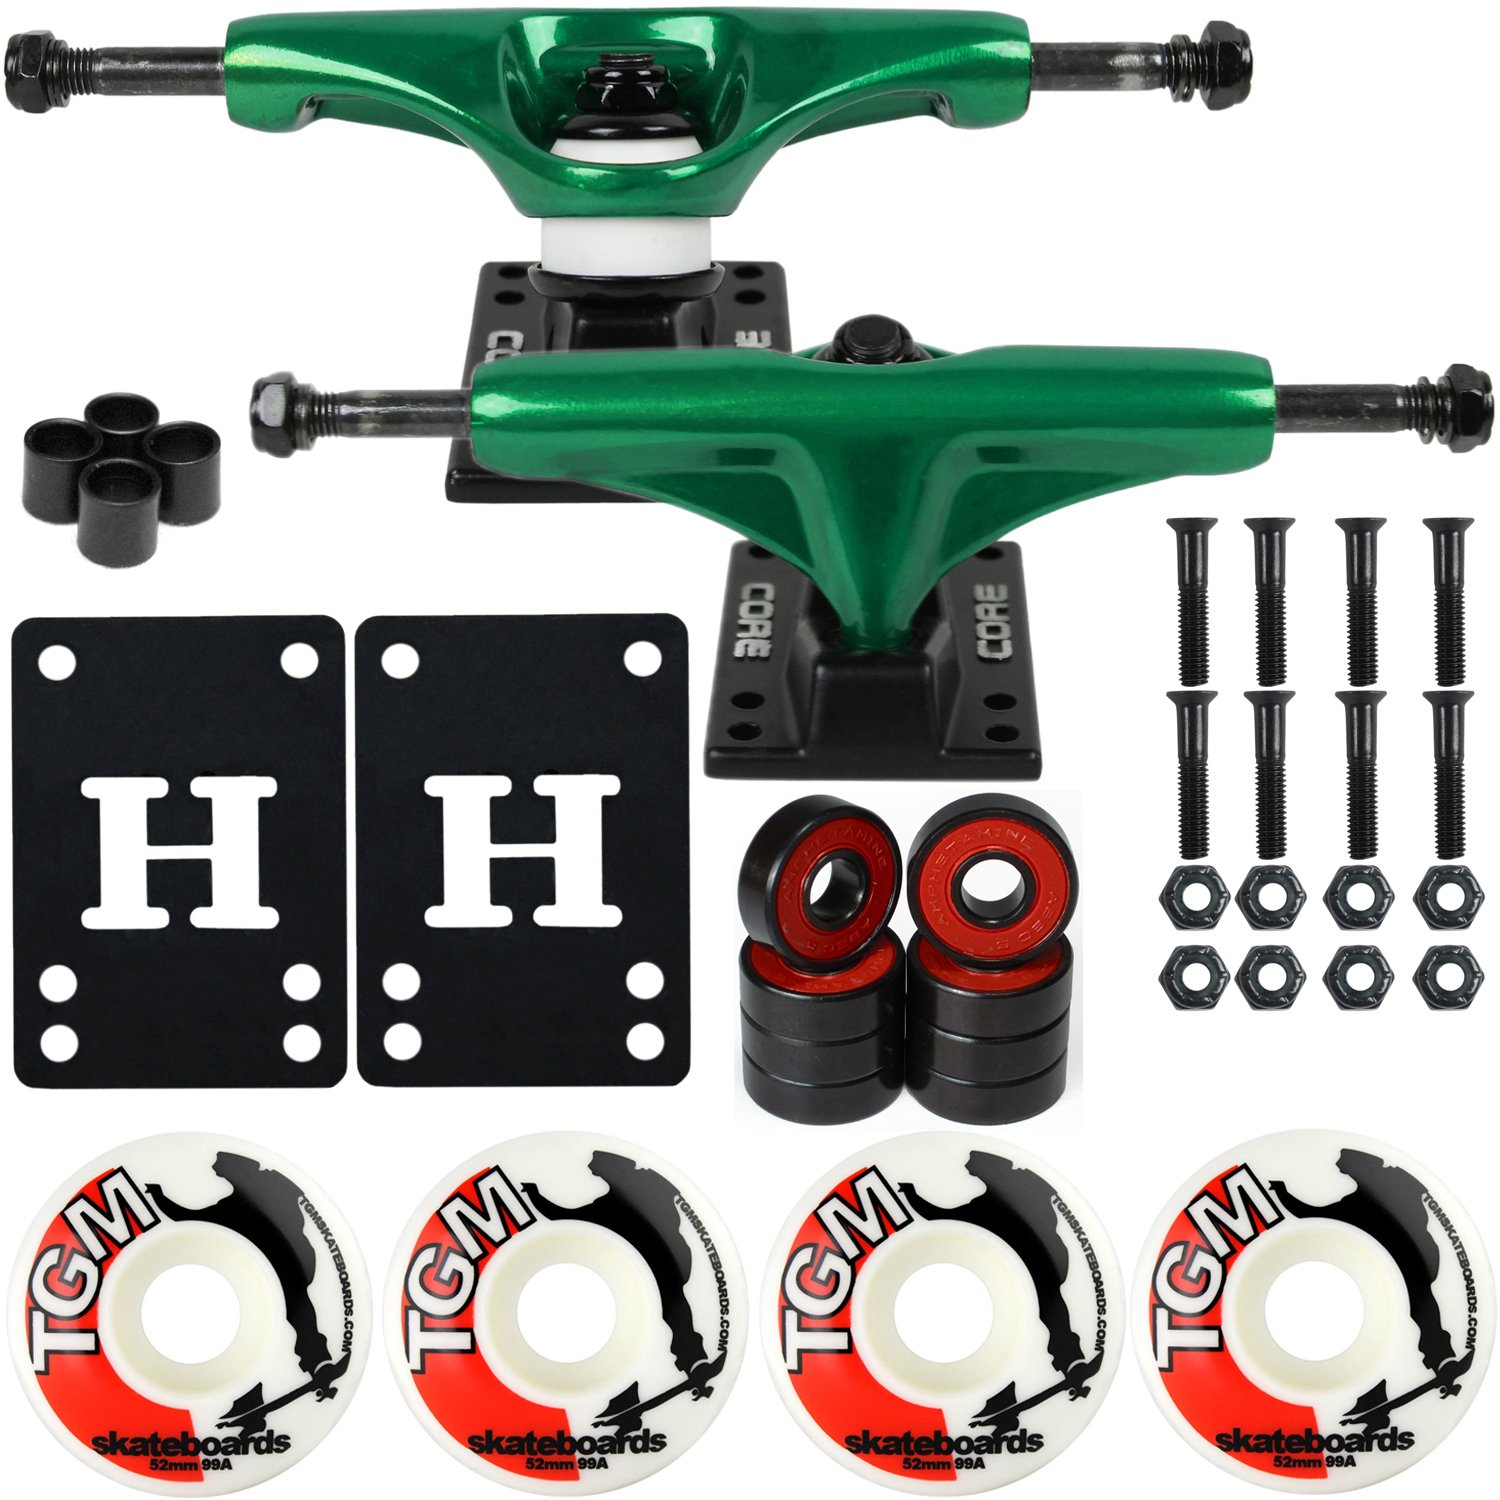 CORE Skateboard Package 5.0'' Trucks 52mm with White Wheels + Components (Metallic Green Hanger/Black Base) by CORE